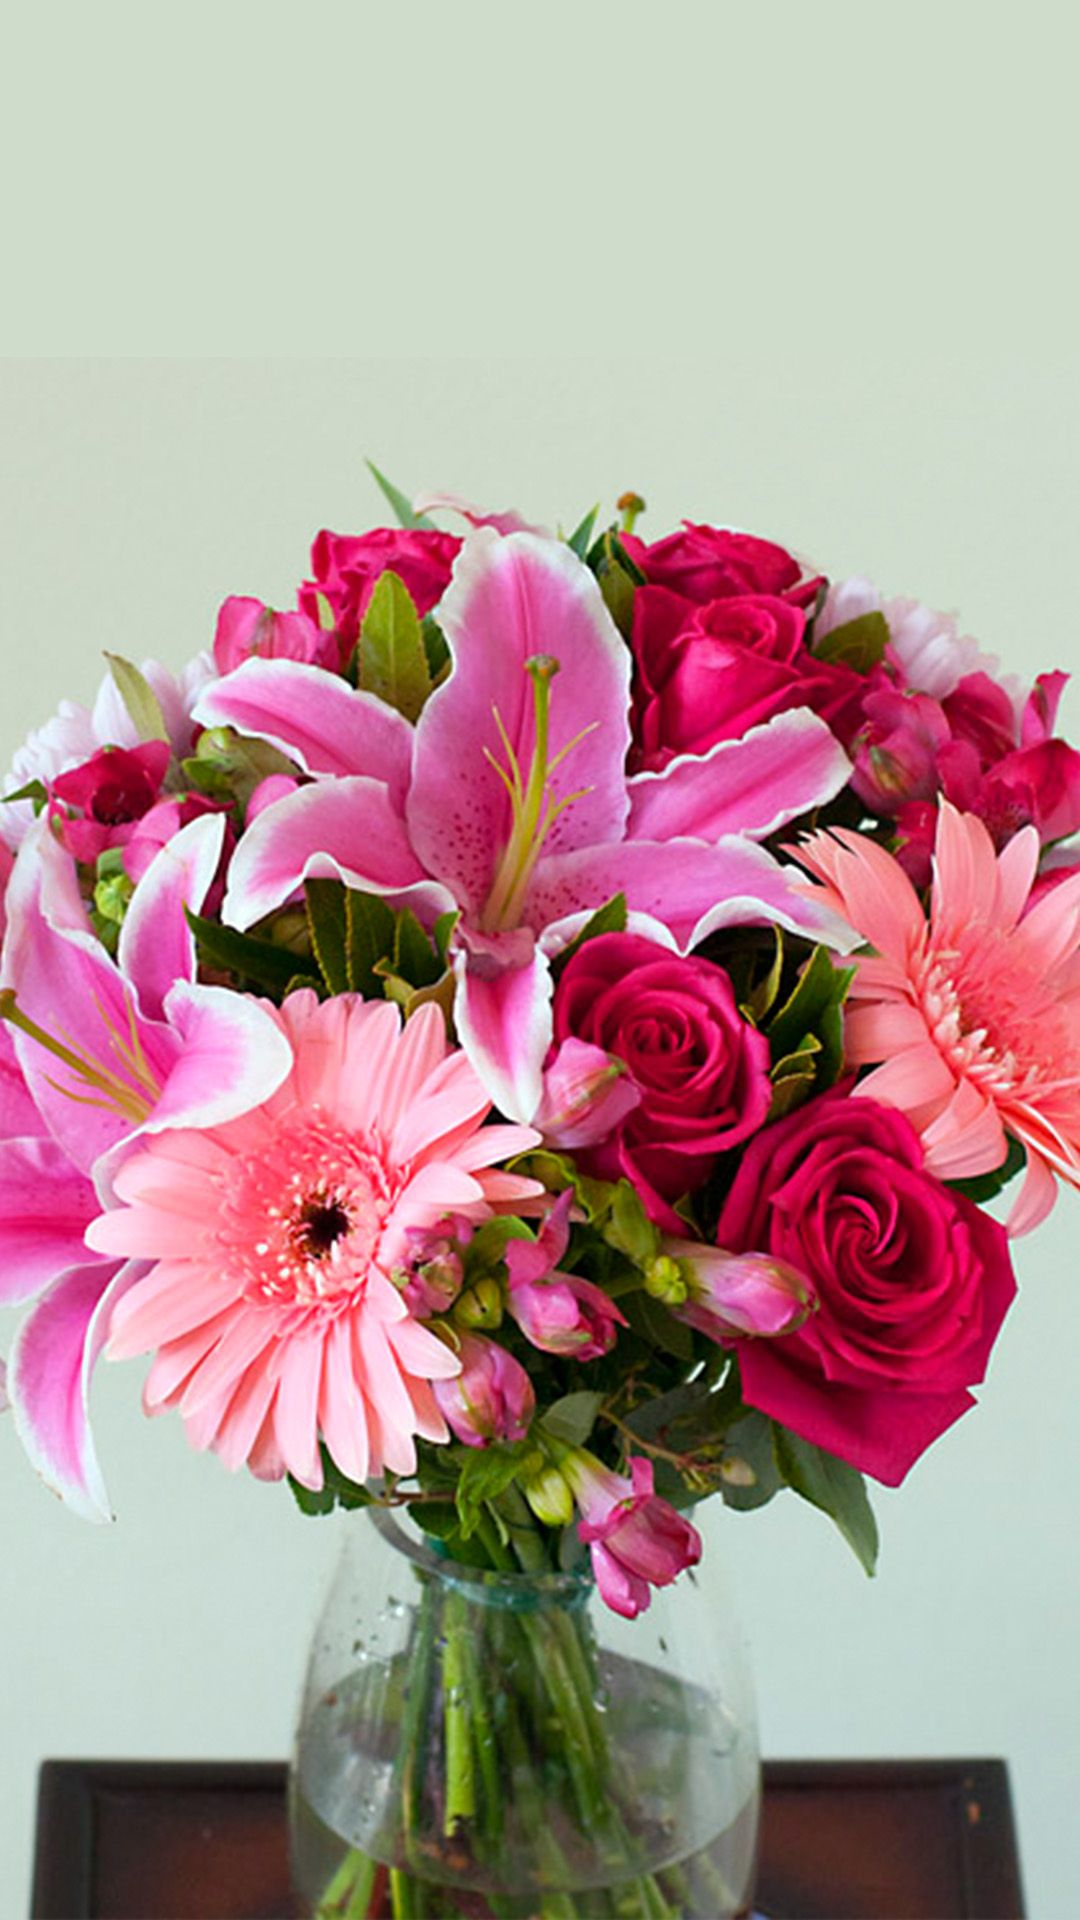 Girly Seasonal Bouquet In Fuchsia Shades For All The Girls Of Your Life Lillies Alstroemerias Roses Chrysanthe Fuchsia Flowers Flowers Online Flower Shop